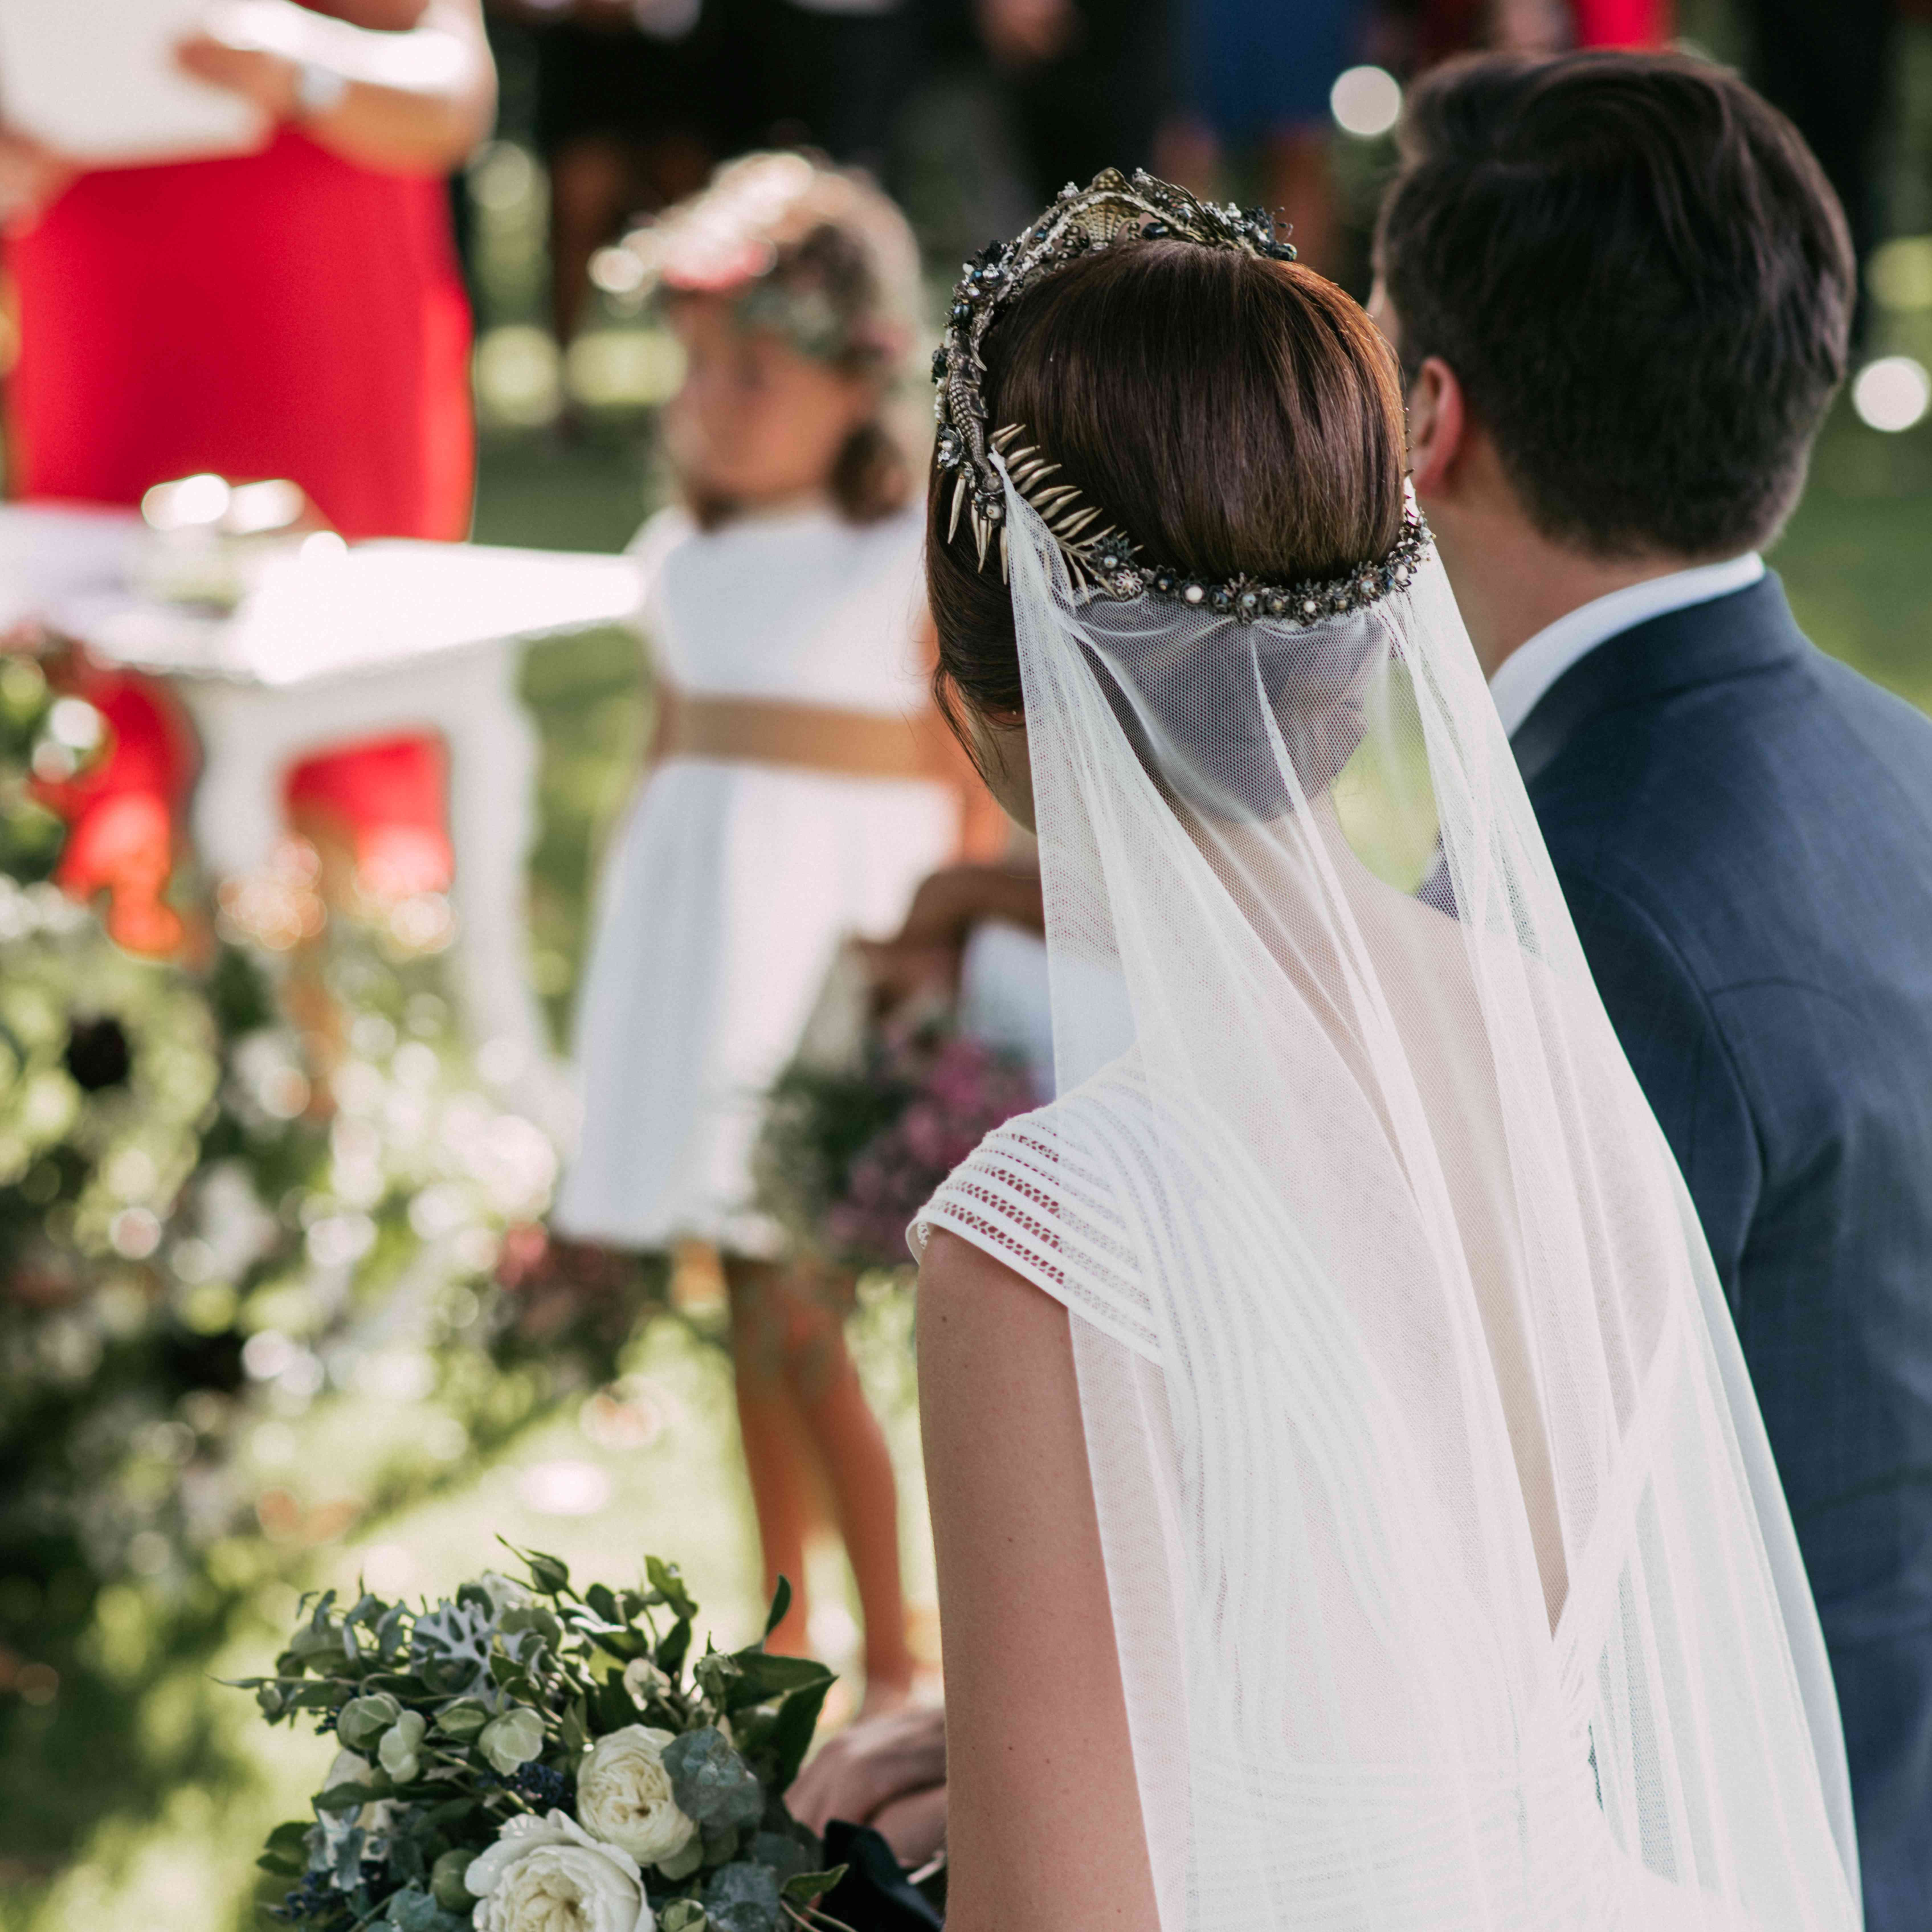 Bride and groom from behind at ceremony